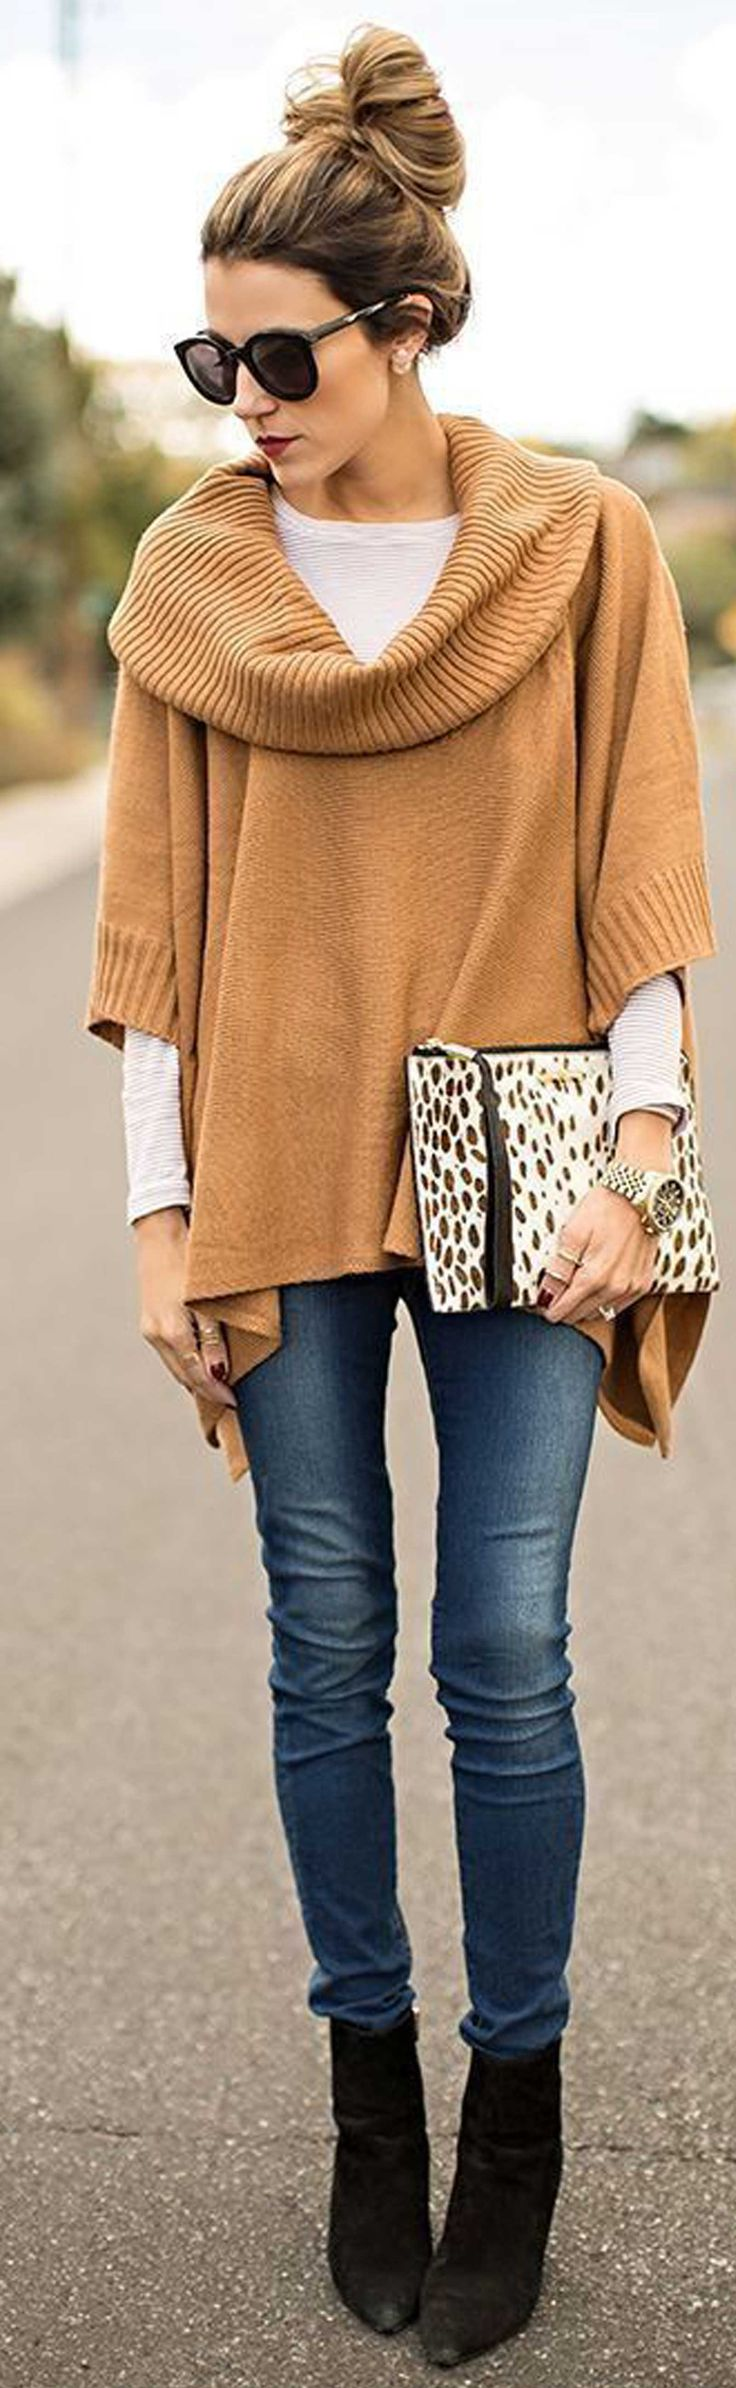 brown poncho with shite long sleeve, dark jeans, printed clutch, messy bun. #lotd #clothing #outfit